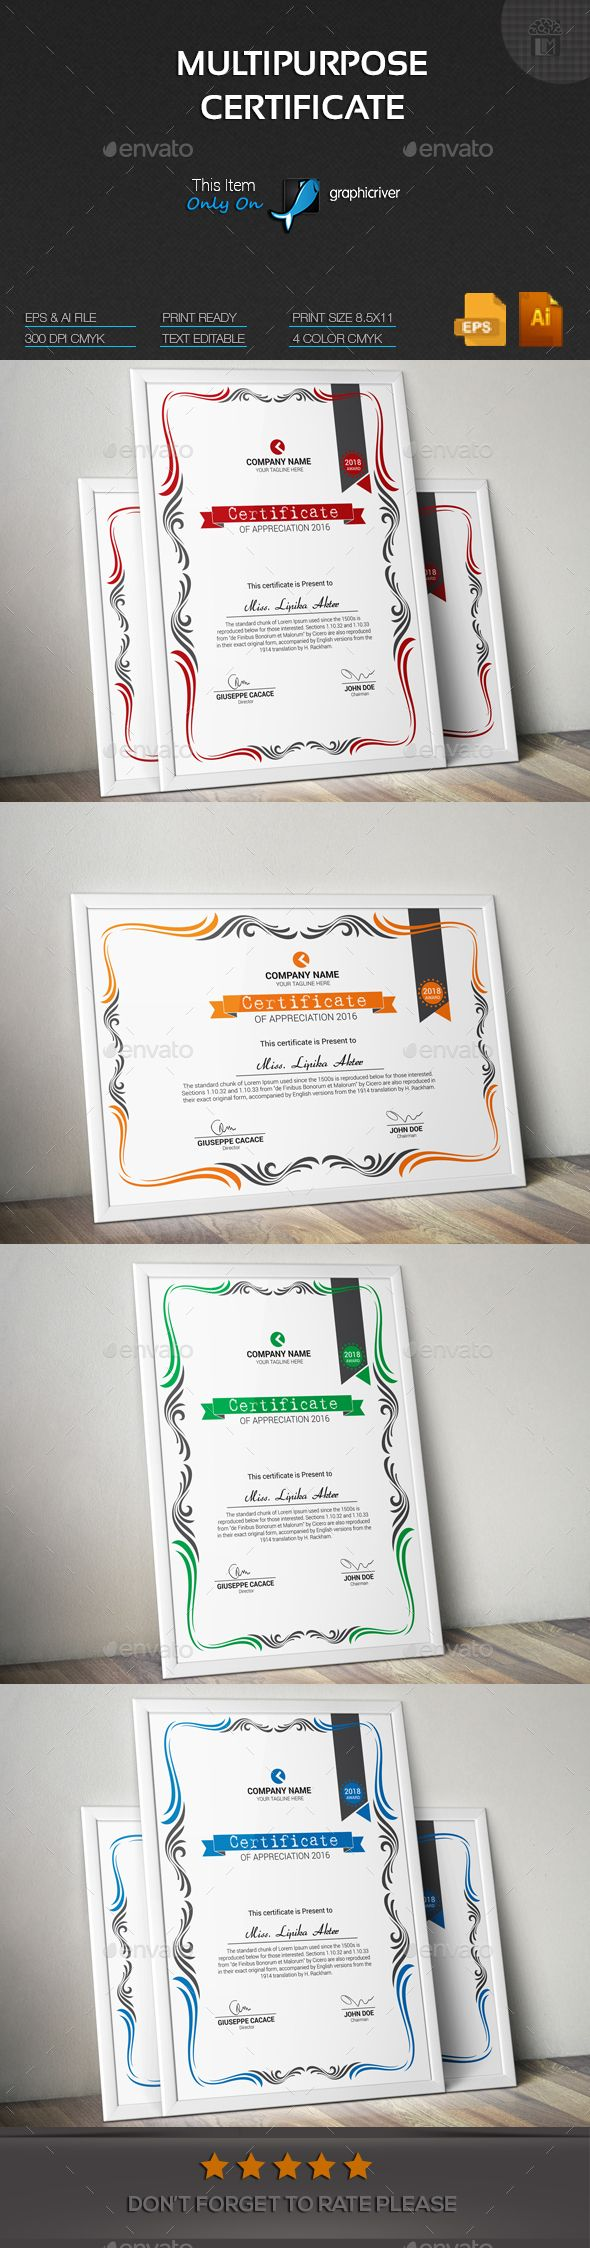 Multipurpose Certificate Design Template - Certificates Stationery Design Template Vector EPS, AI Illustrator. Download here: https://graphicriver.net/item/multipurpose-certificate/19214790?ref=yinkira